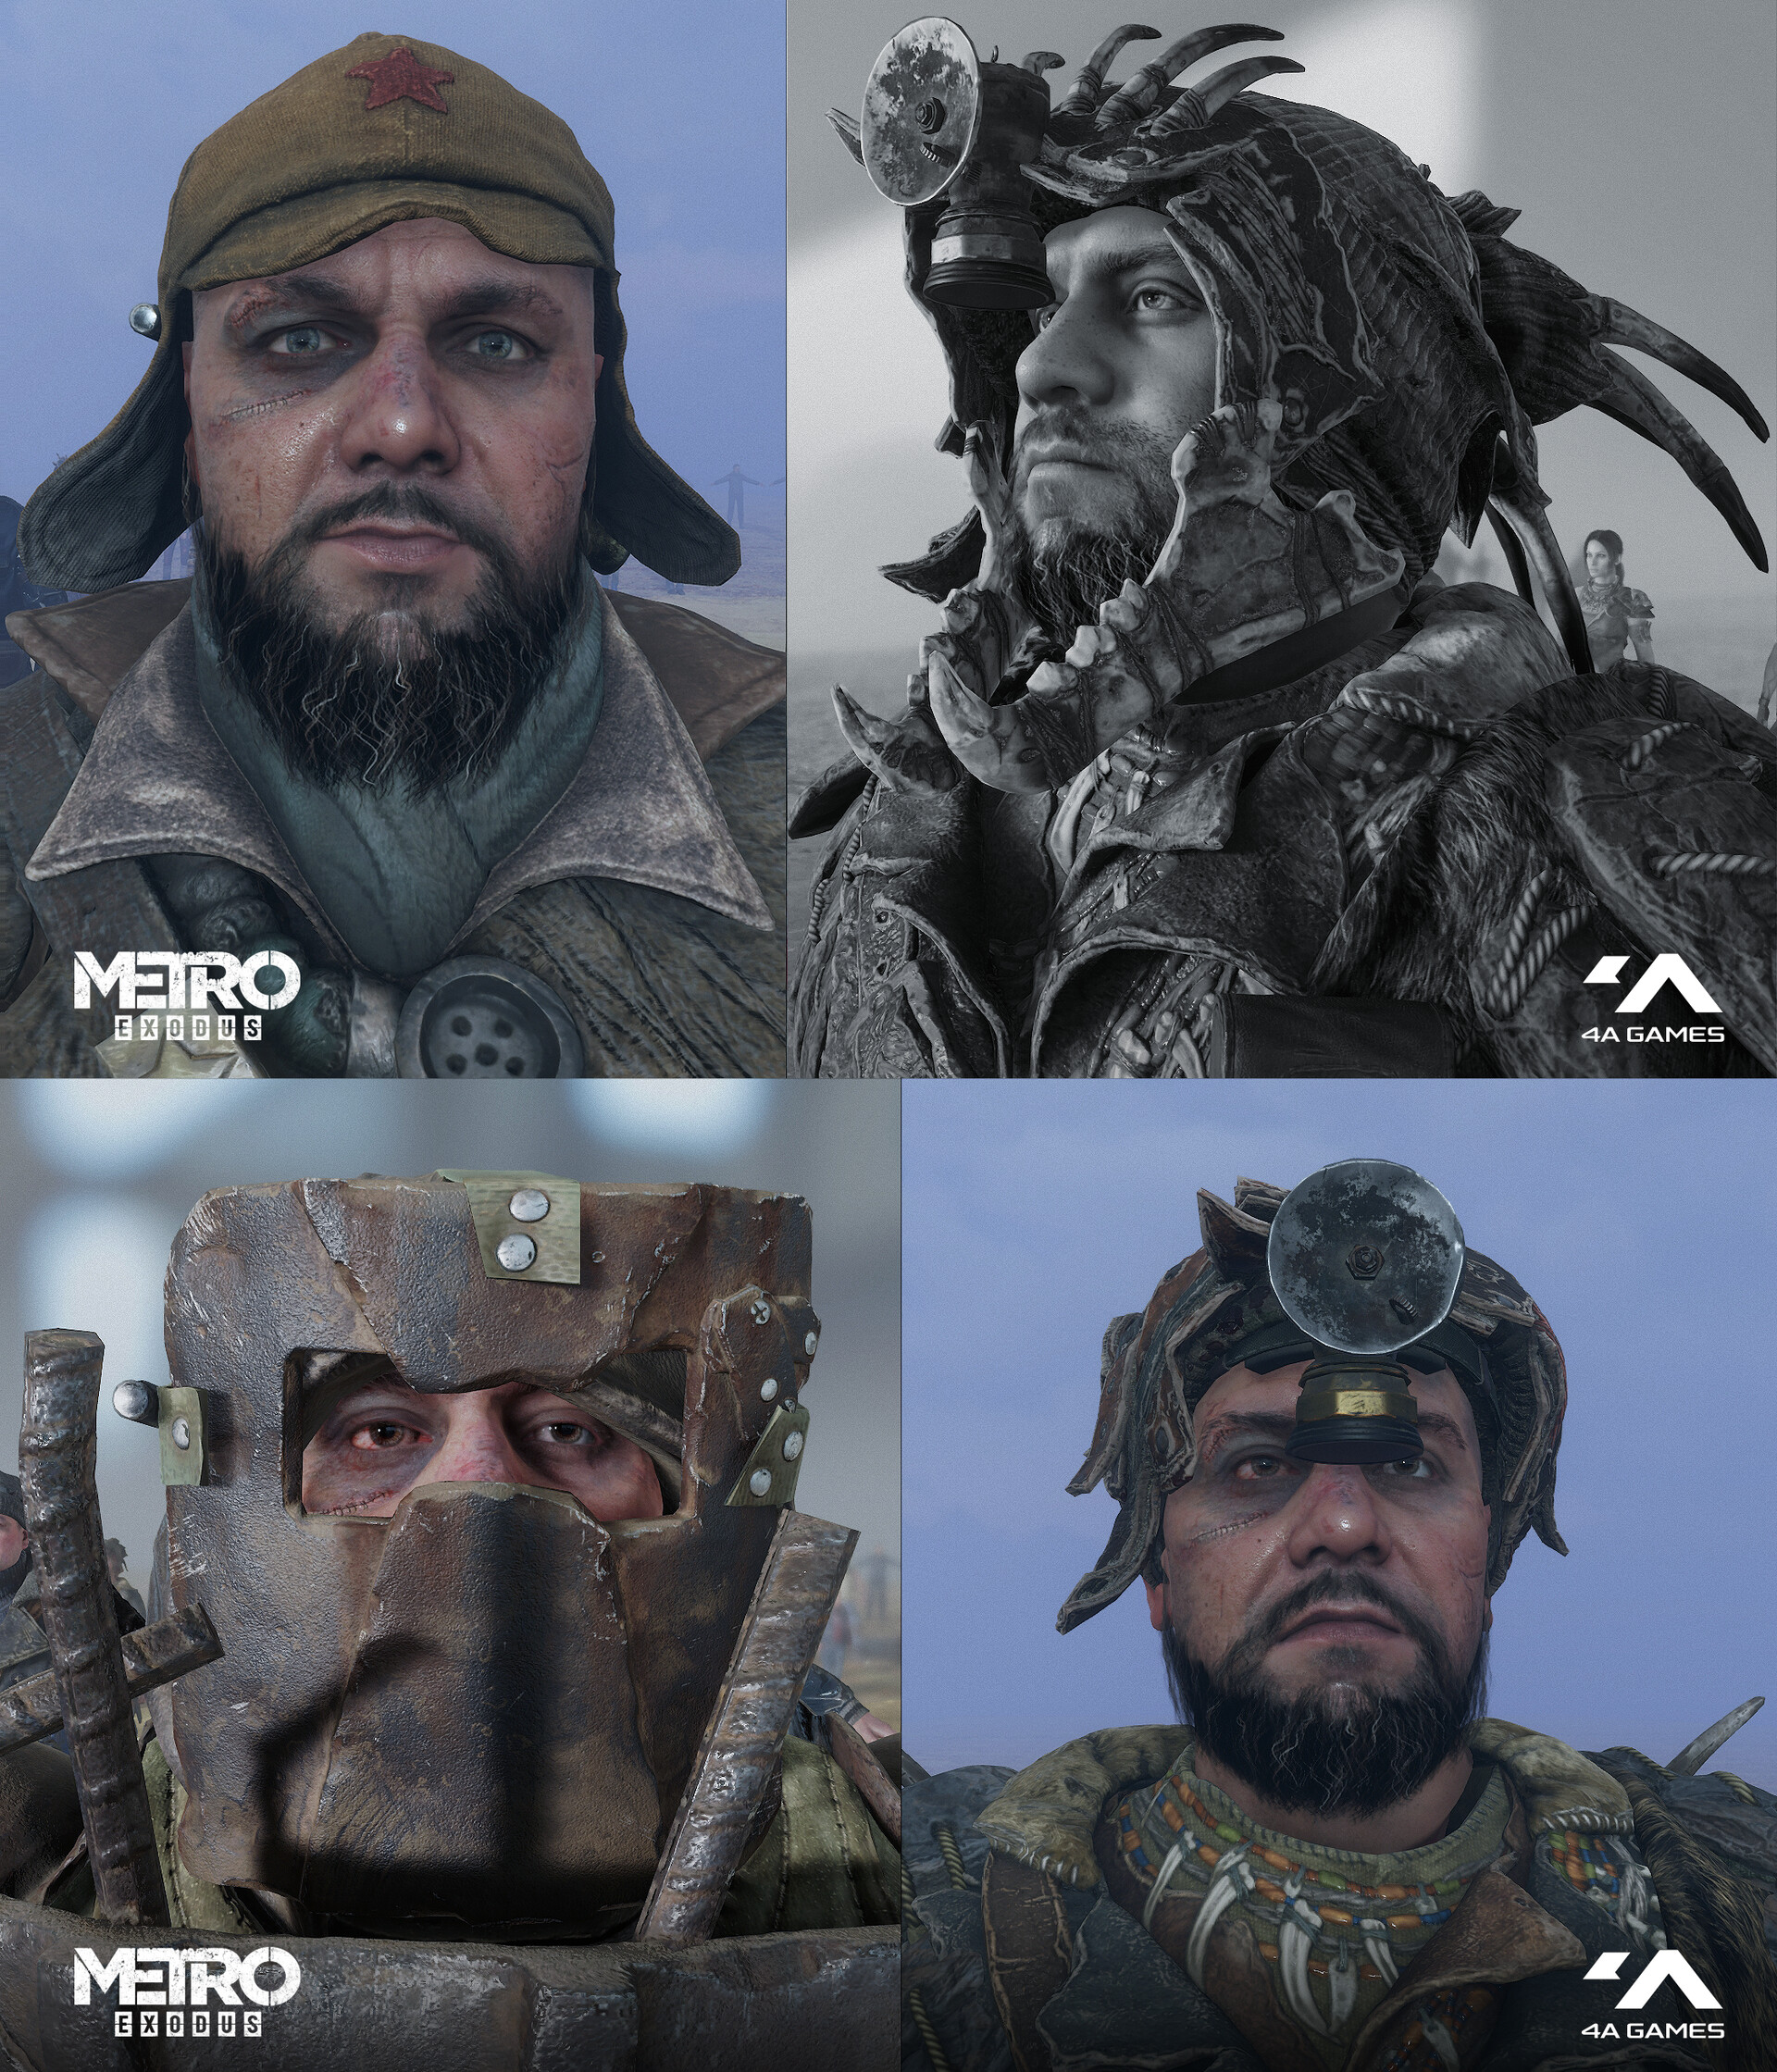 This face texture set or mesh, or whole head you can see in the game on different characters